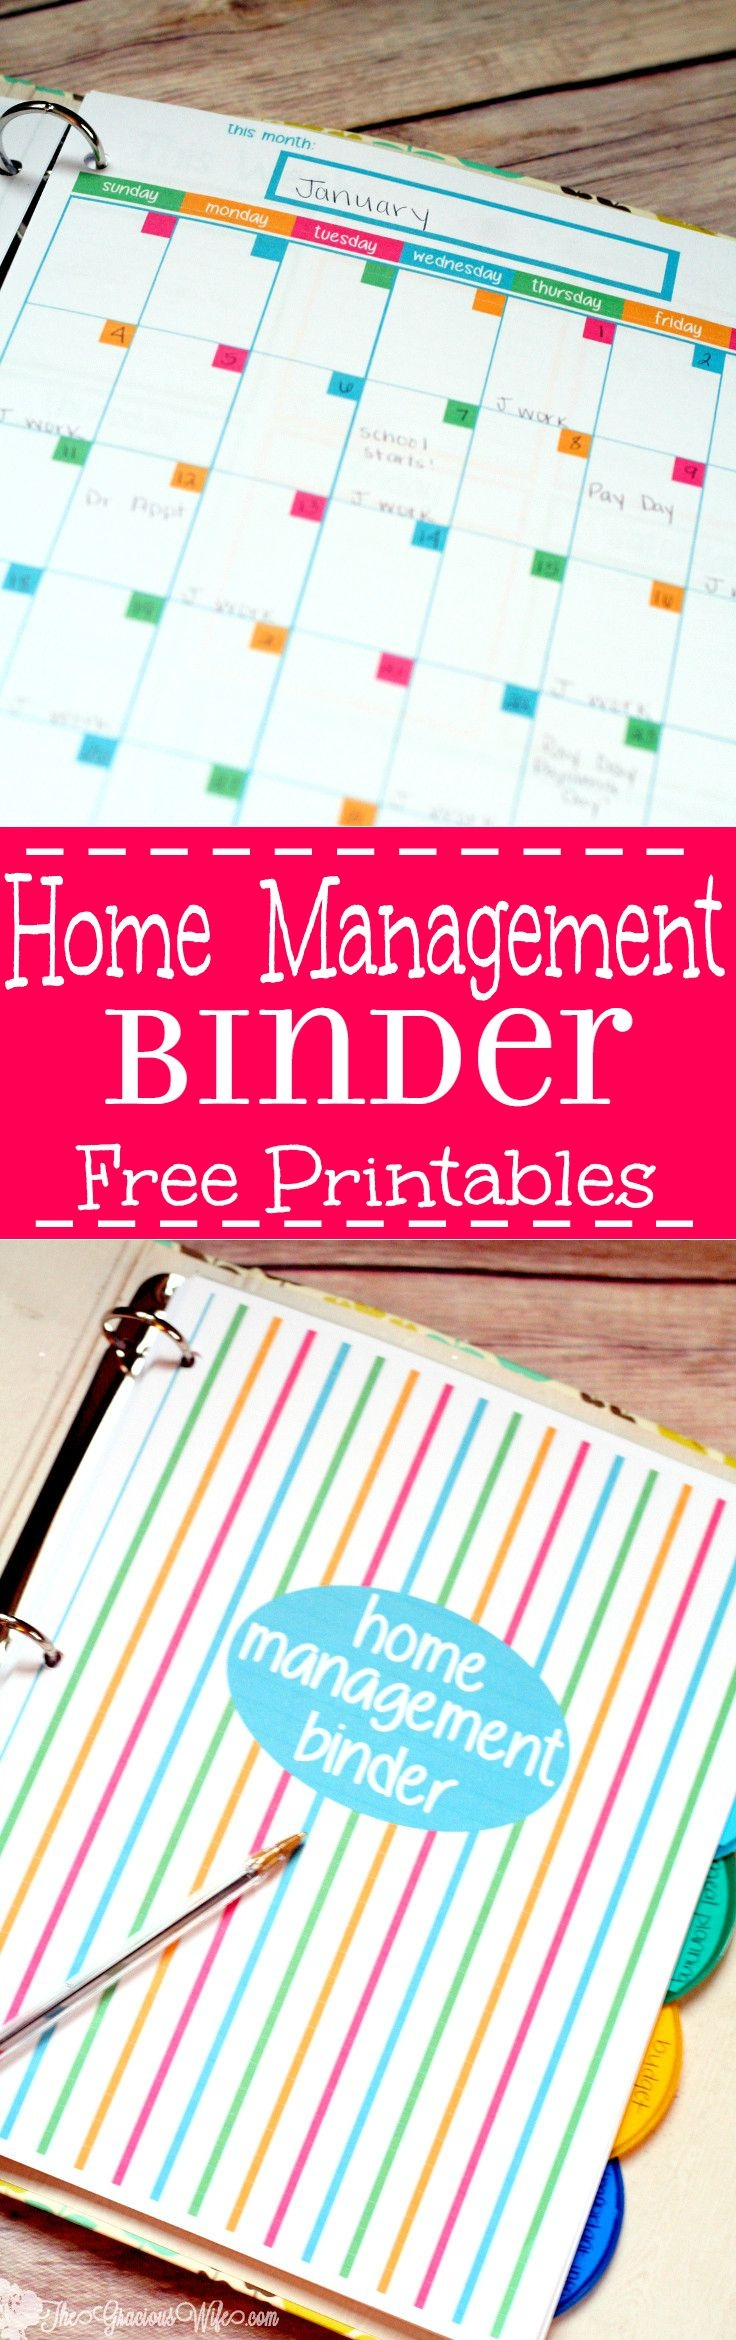 Home Management Binder - Free Printables | The Gracious Wife - Free Home Organization Binder Printables